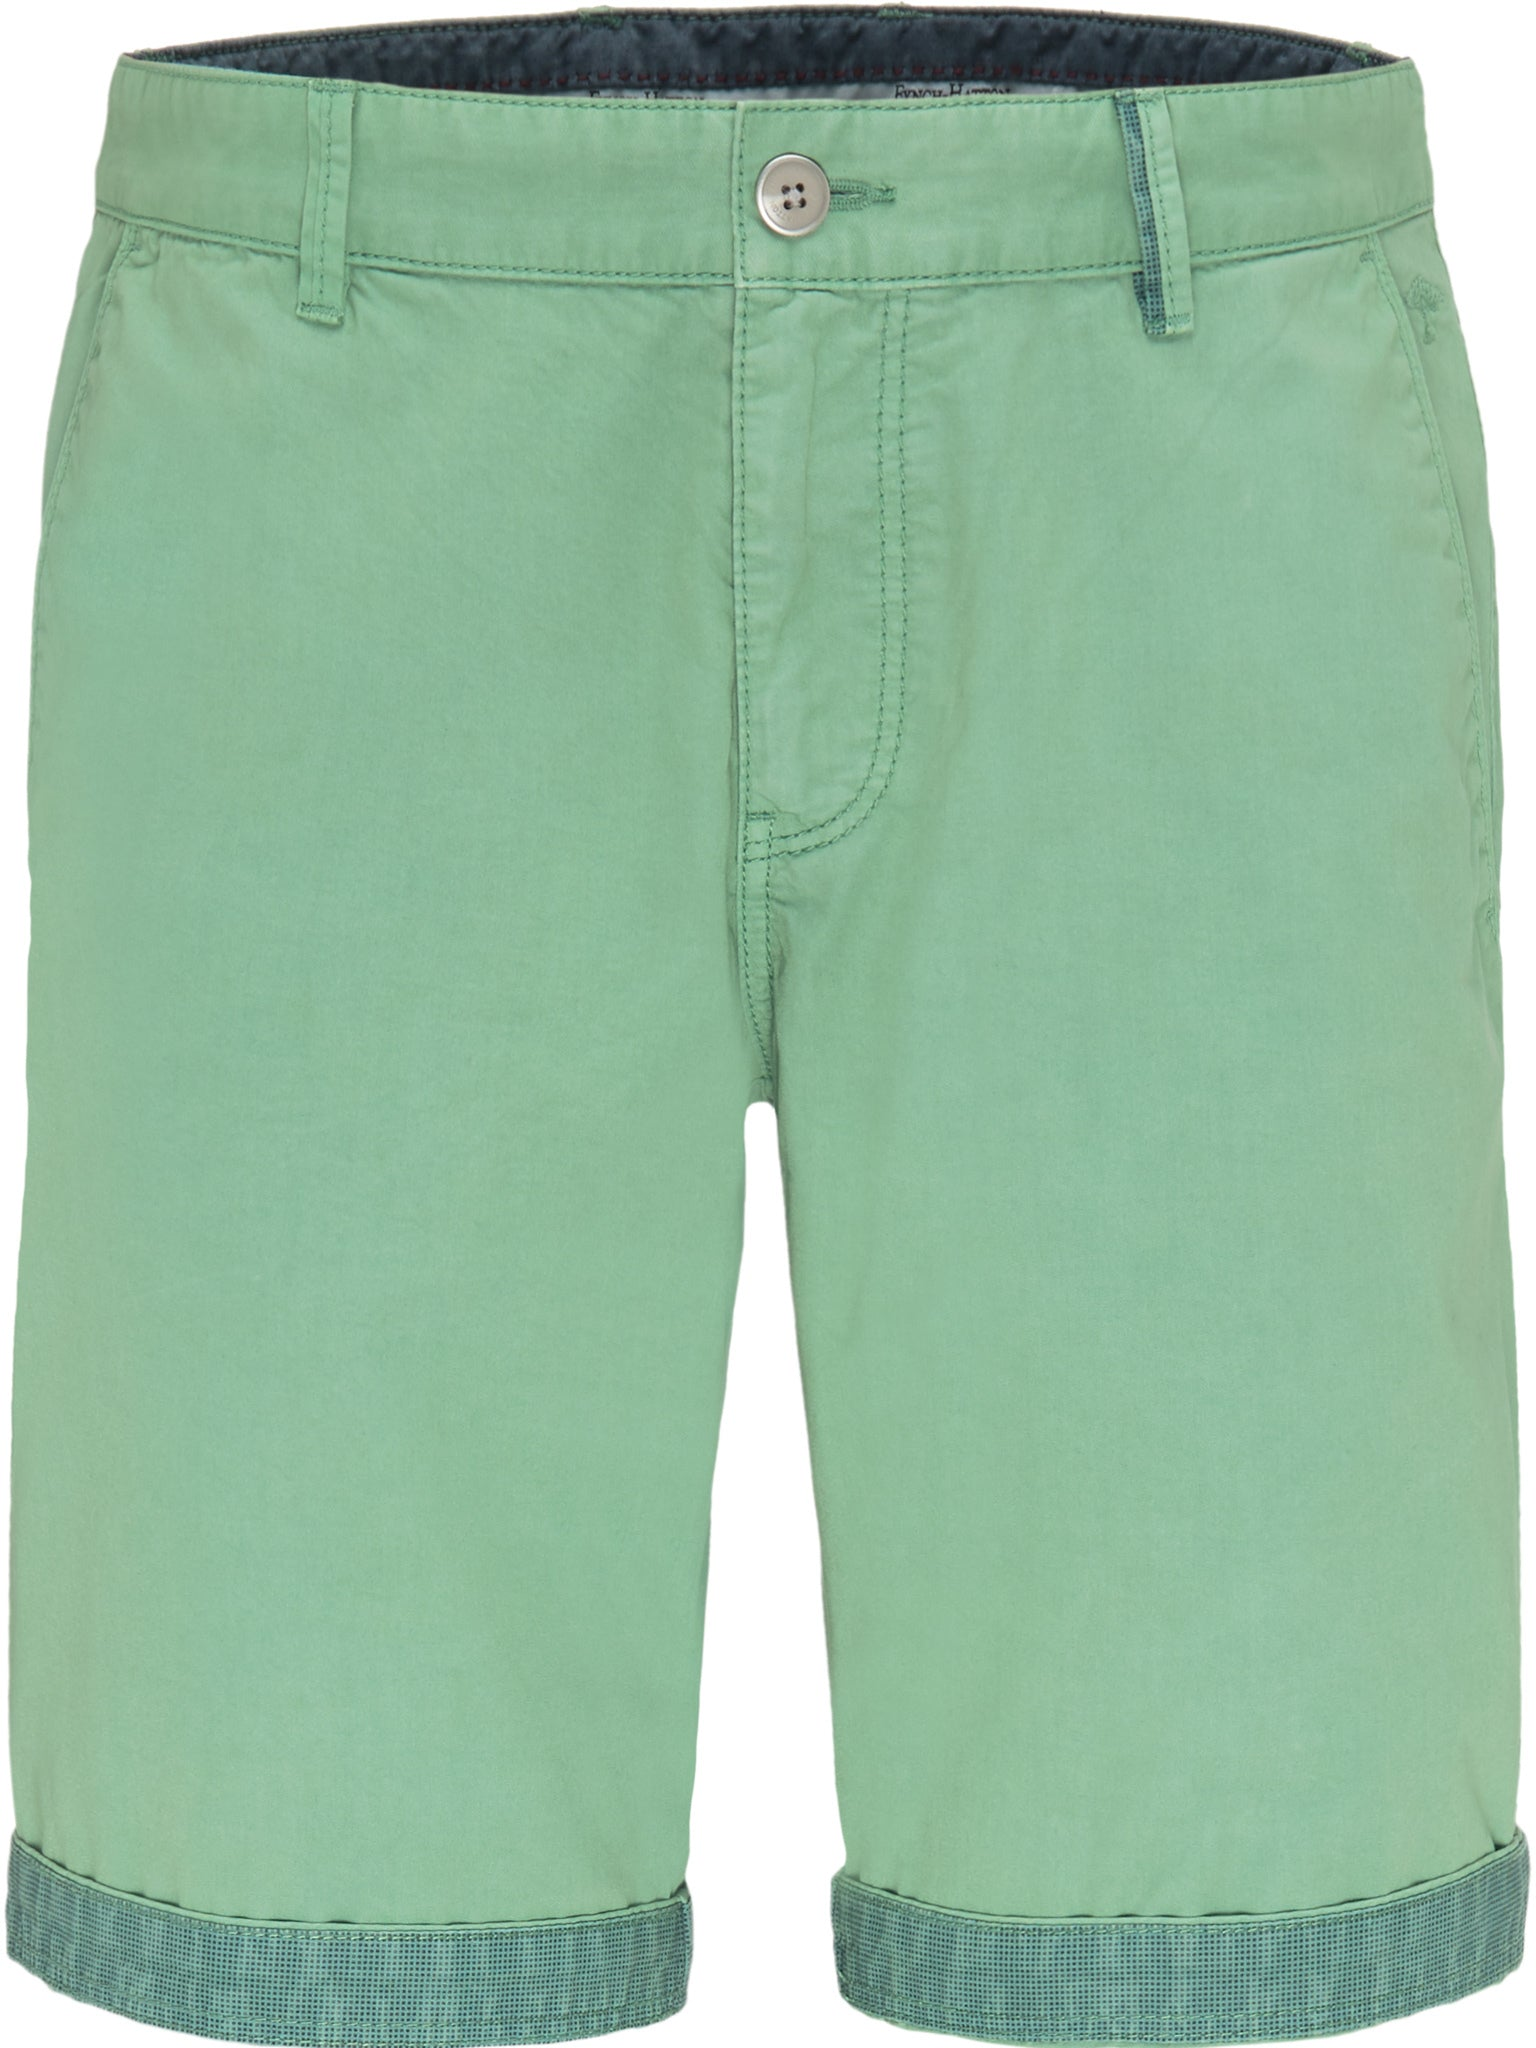 Fynch Hatton Garment Dyed Shorts for Men in Mint